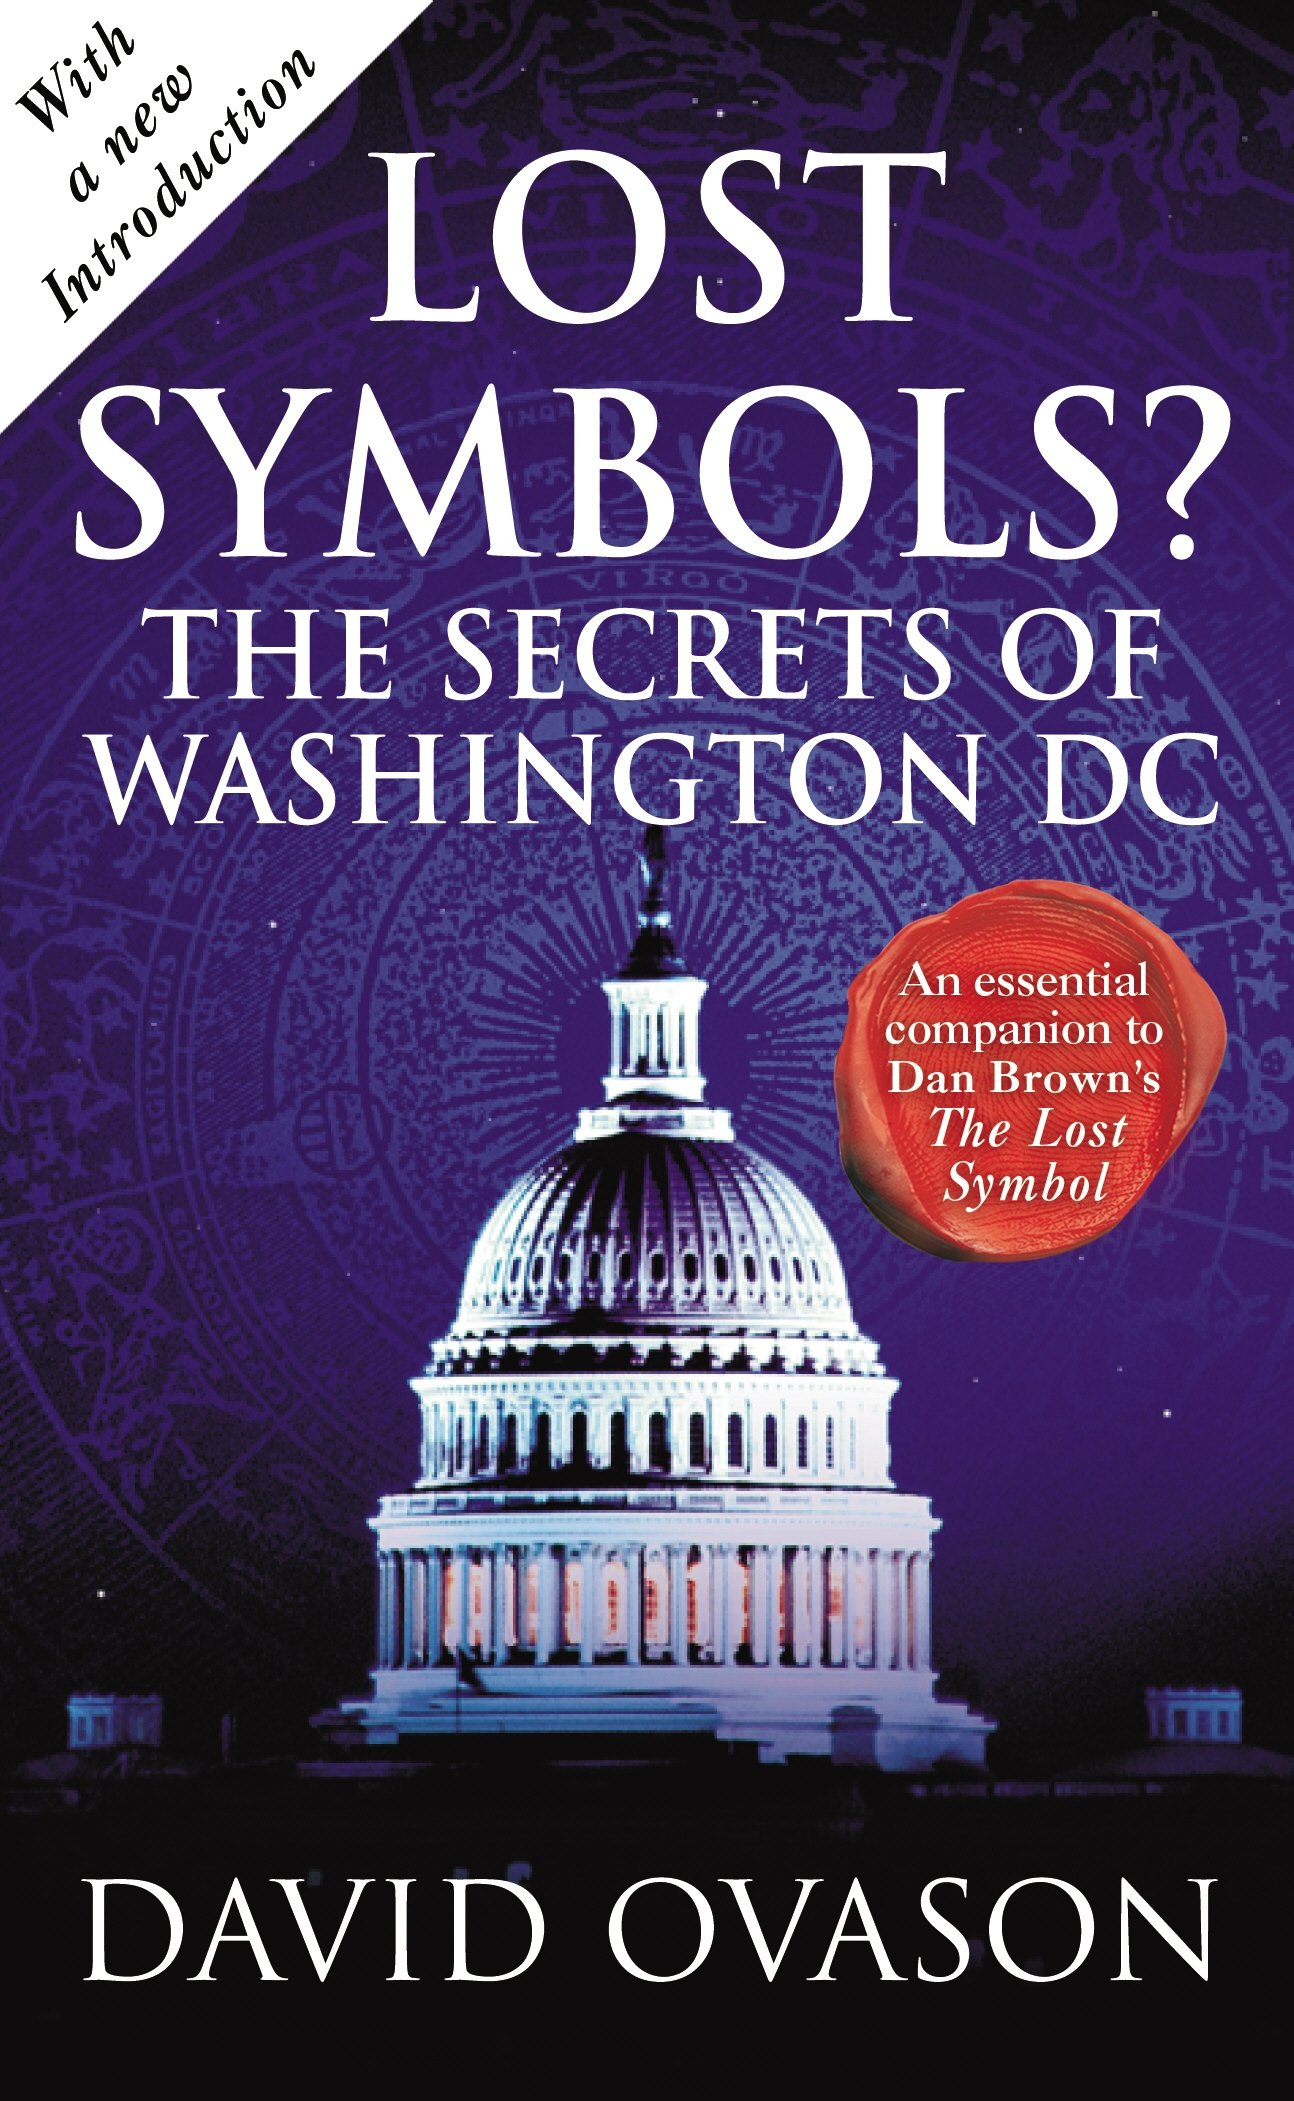 Lost symbols the secrets of washington dc david ovason lost symbols the secrets of washington dc david ovason 9780099548089 amazon books buycottarizona